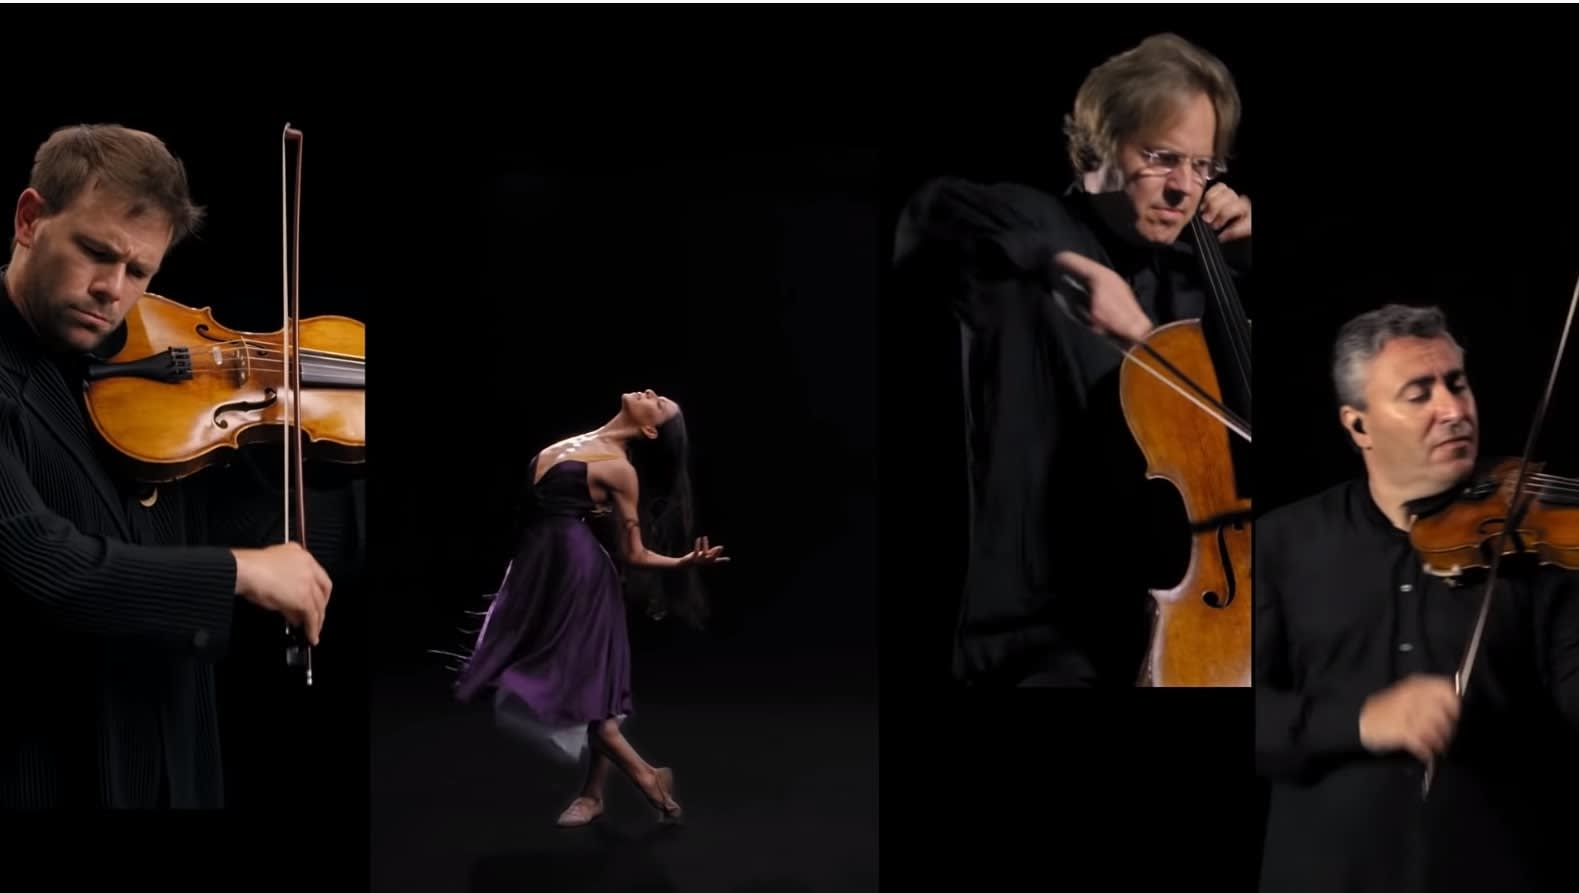 """The Impossible Orchestra performs """"Danzon No. 2"""" to raise funds for co-vid relief"""